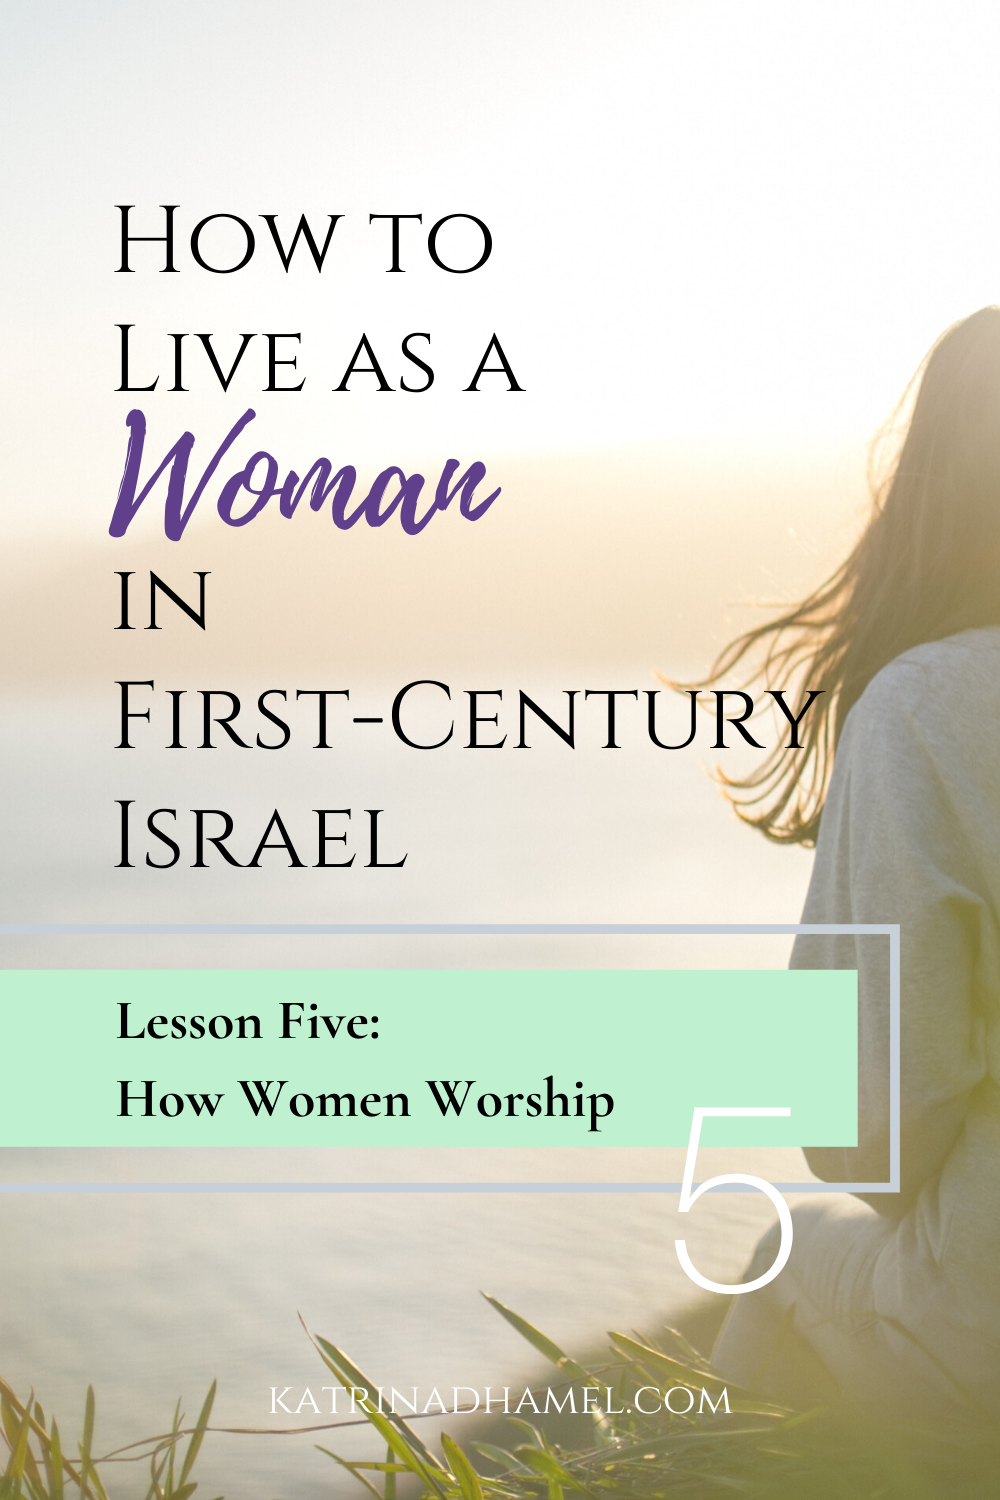 Woman with long hair overlooking hazy lake with the text 'How to Live as a Woman in First-century Israel, Lesson Five How Women Worship'